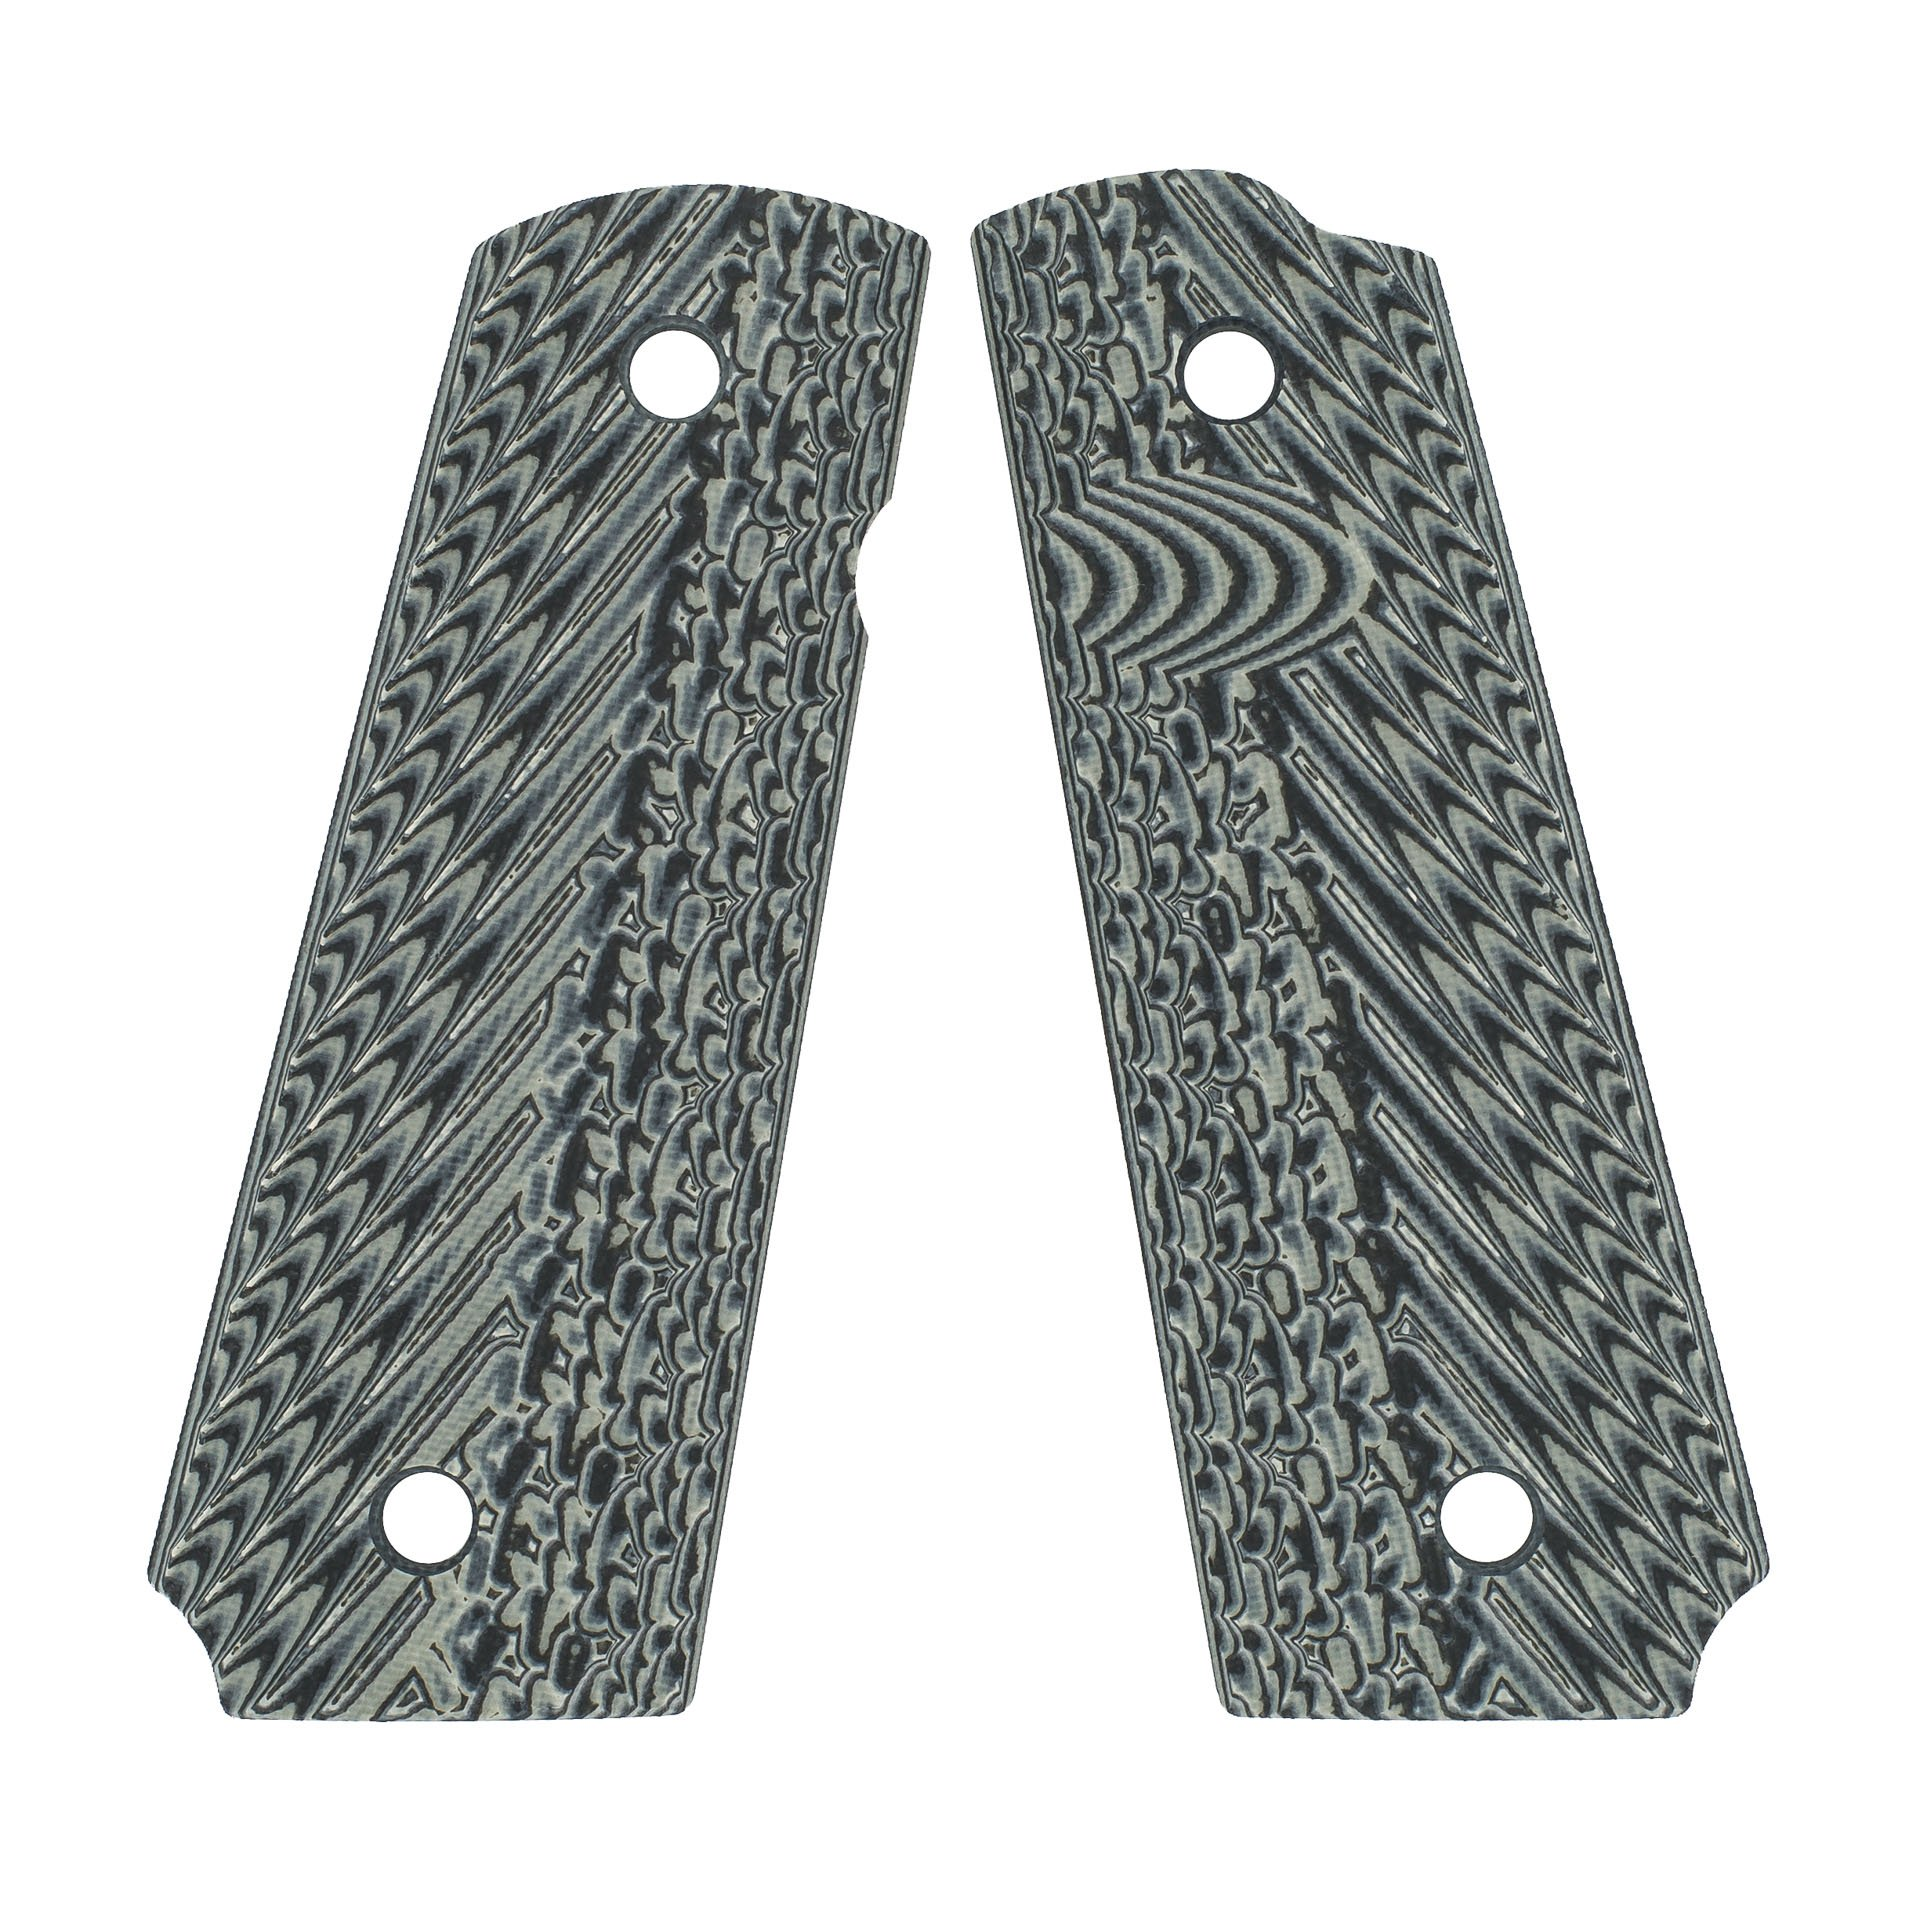 VZ Operator III 1911 Compact Black Gray by VZ Grips